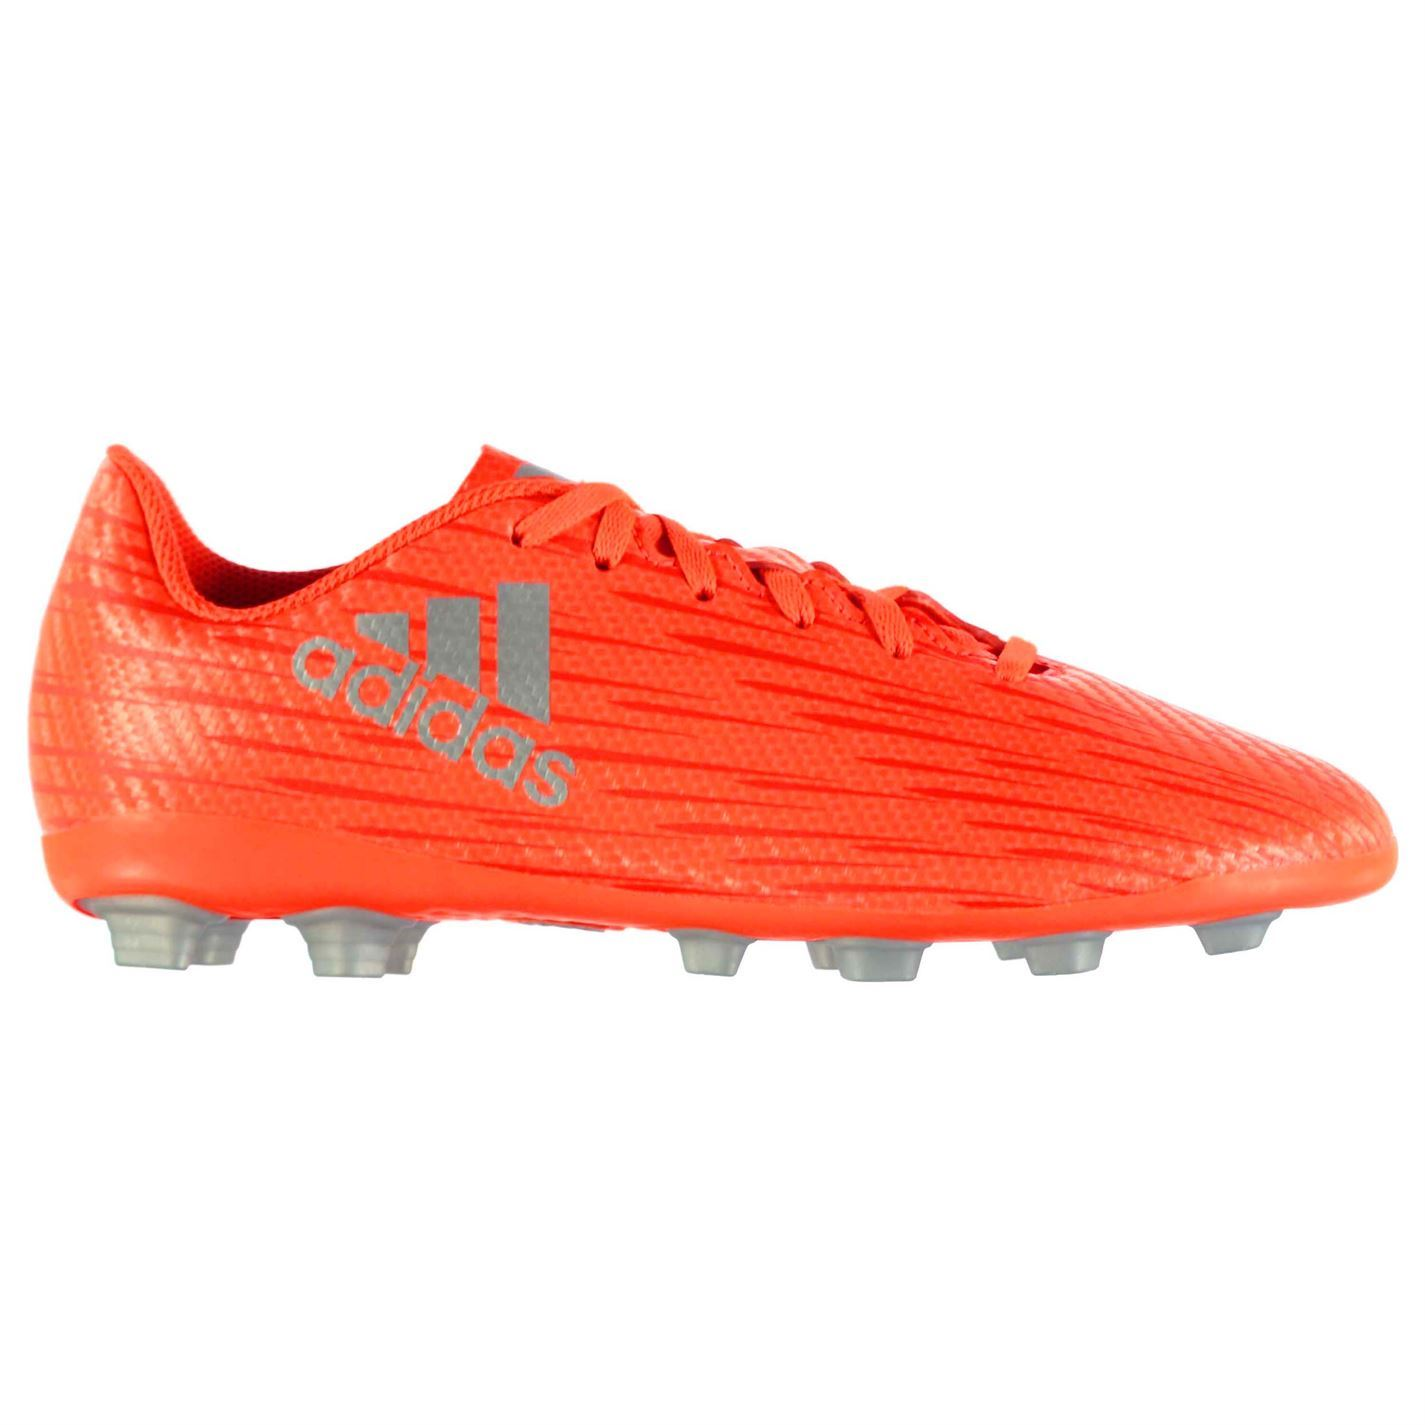 adidas Kids X 16.4 FG Football Boots Junior Lace Up Shoes Moulded ... 2d7db2fdb